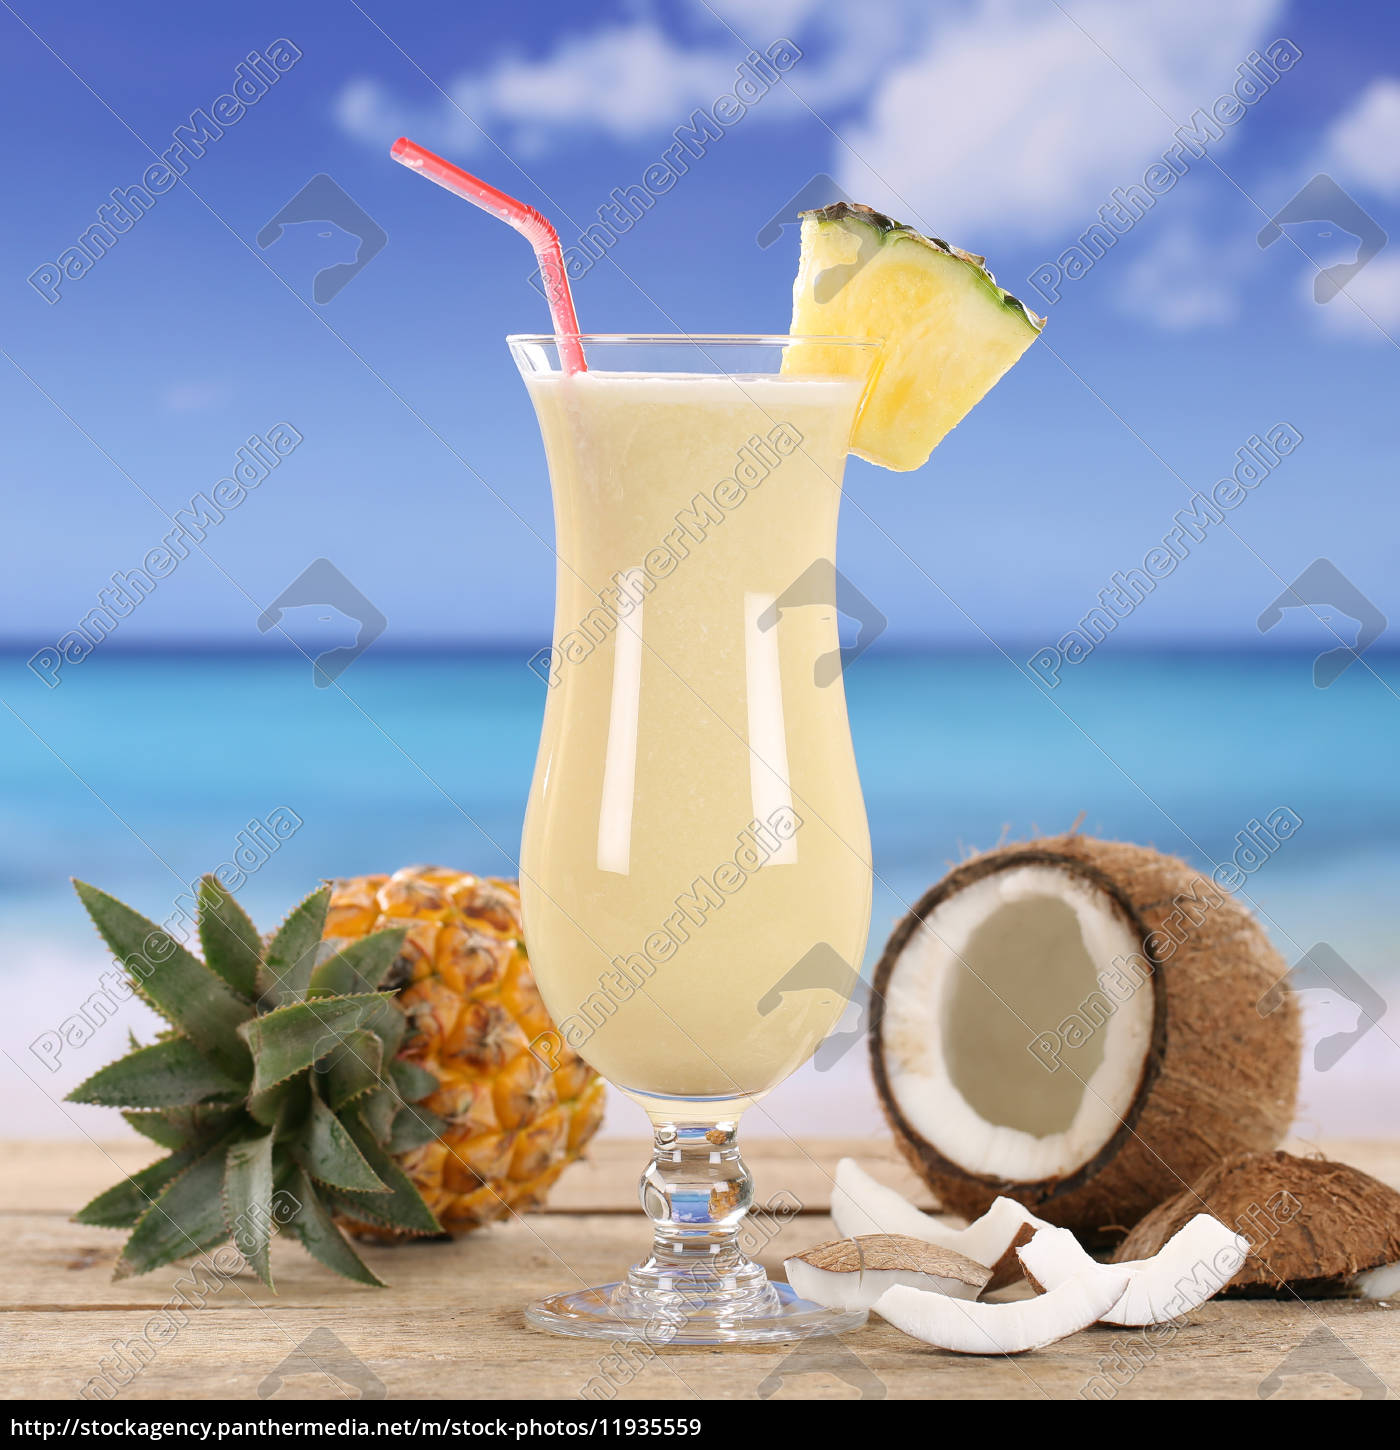 Pina colada cocktail  Pina Colada Cocktail Drink am Strand - Lizenzfreies Bild - #11935559 ...